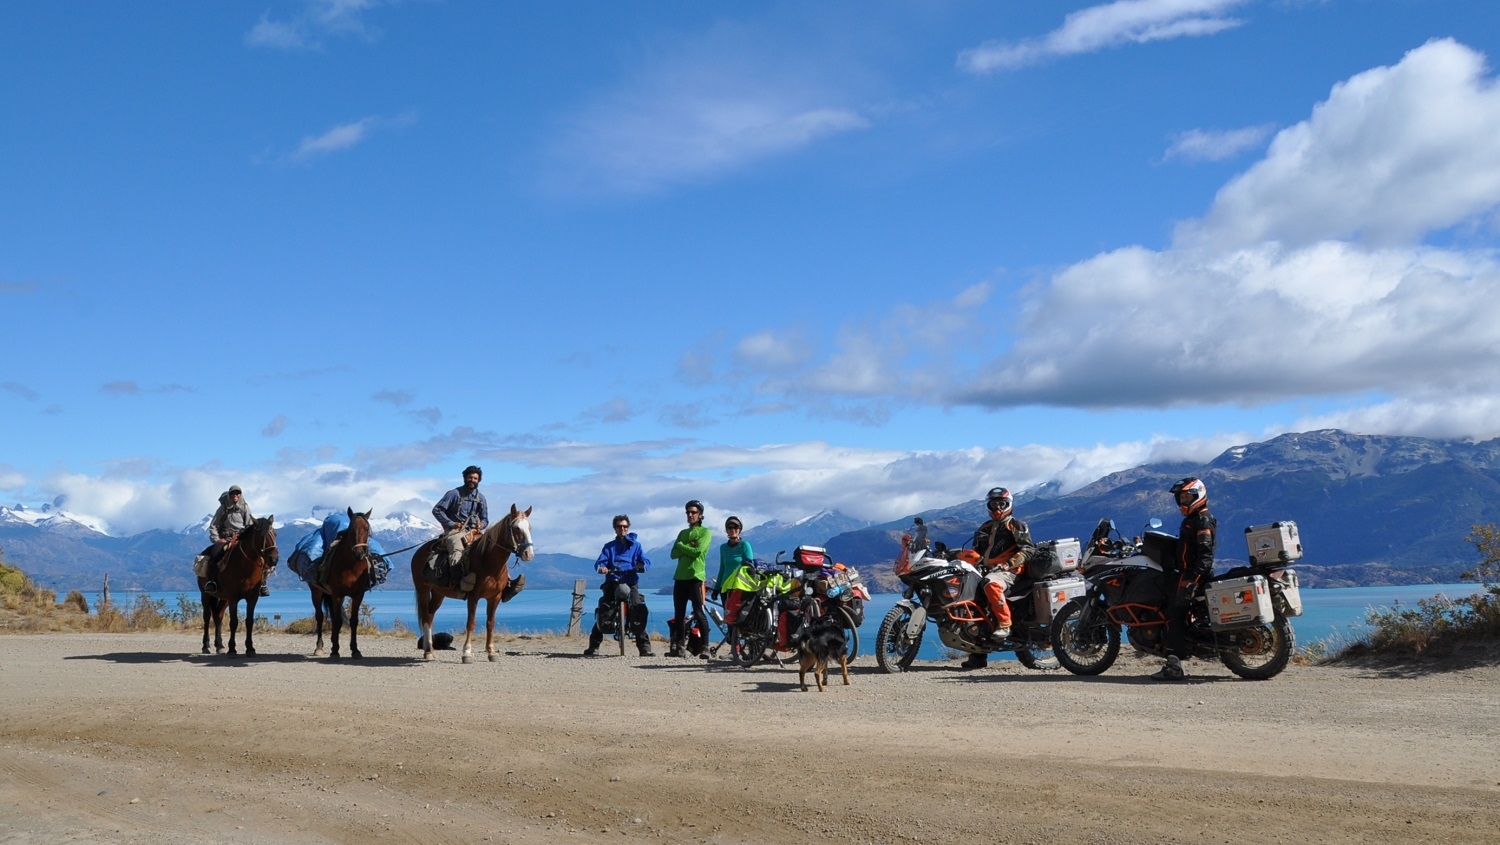 Hauptsache unterwegs: Reisende mit Rad, Pferd und Motorrad | On the move: travelers with bicycles, horses, and motorcycles